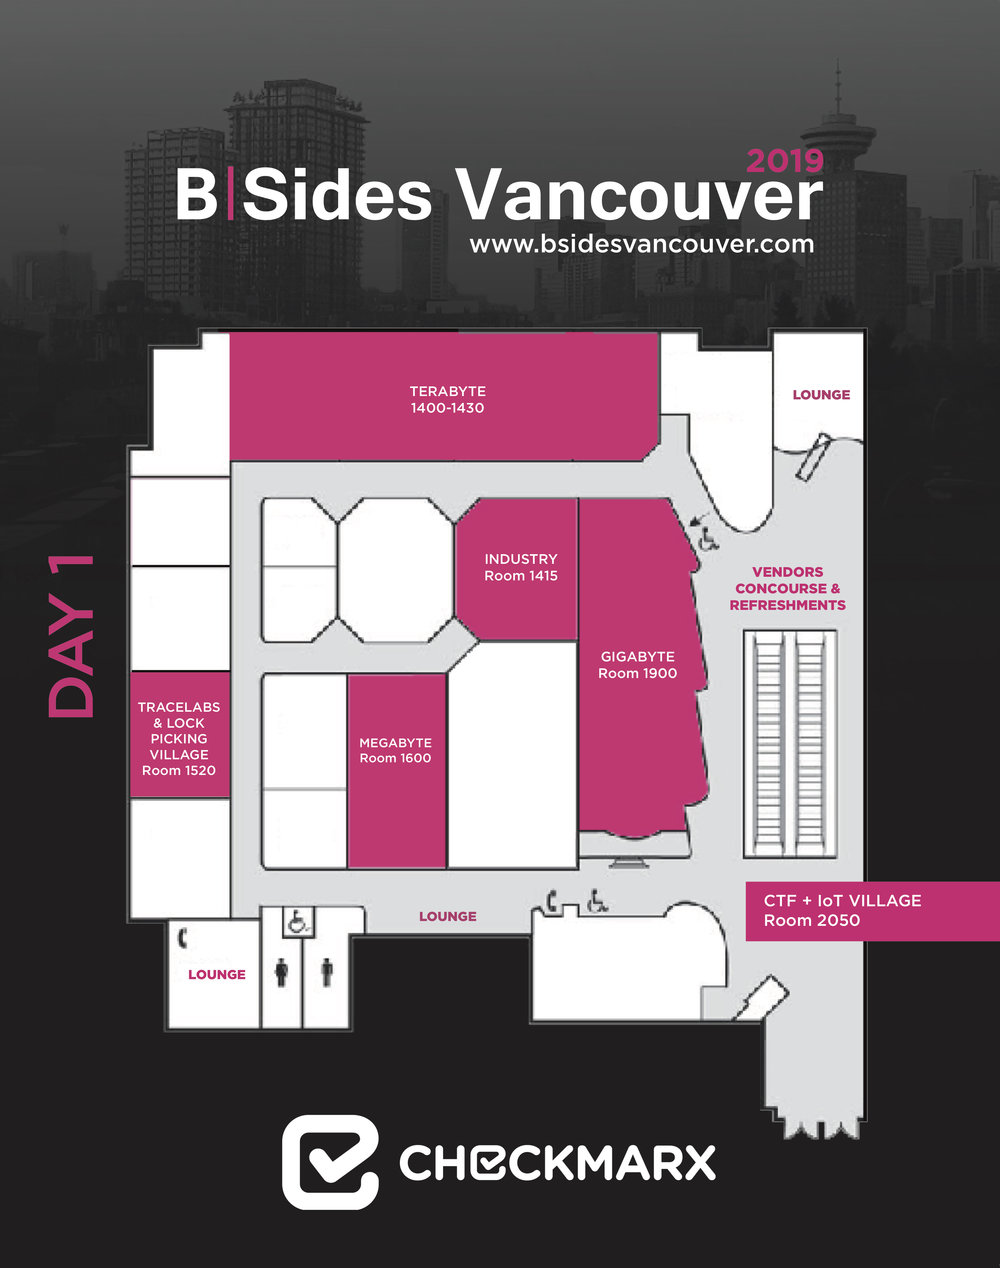 BSidesSignageD_20_Floorplan-Day1.jpg